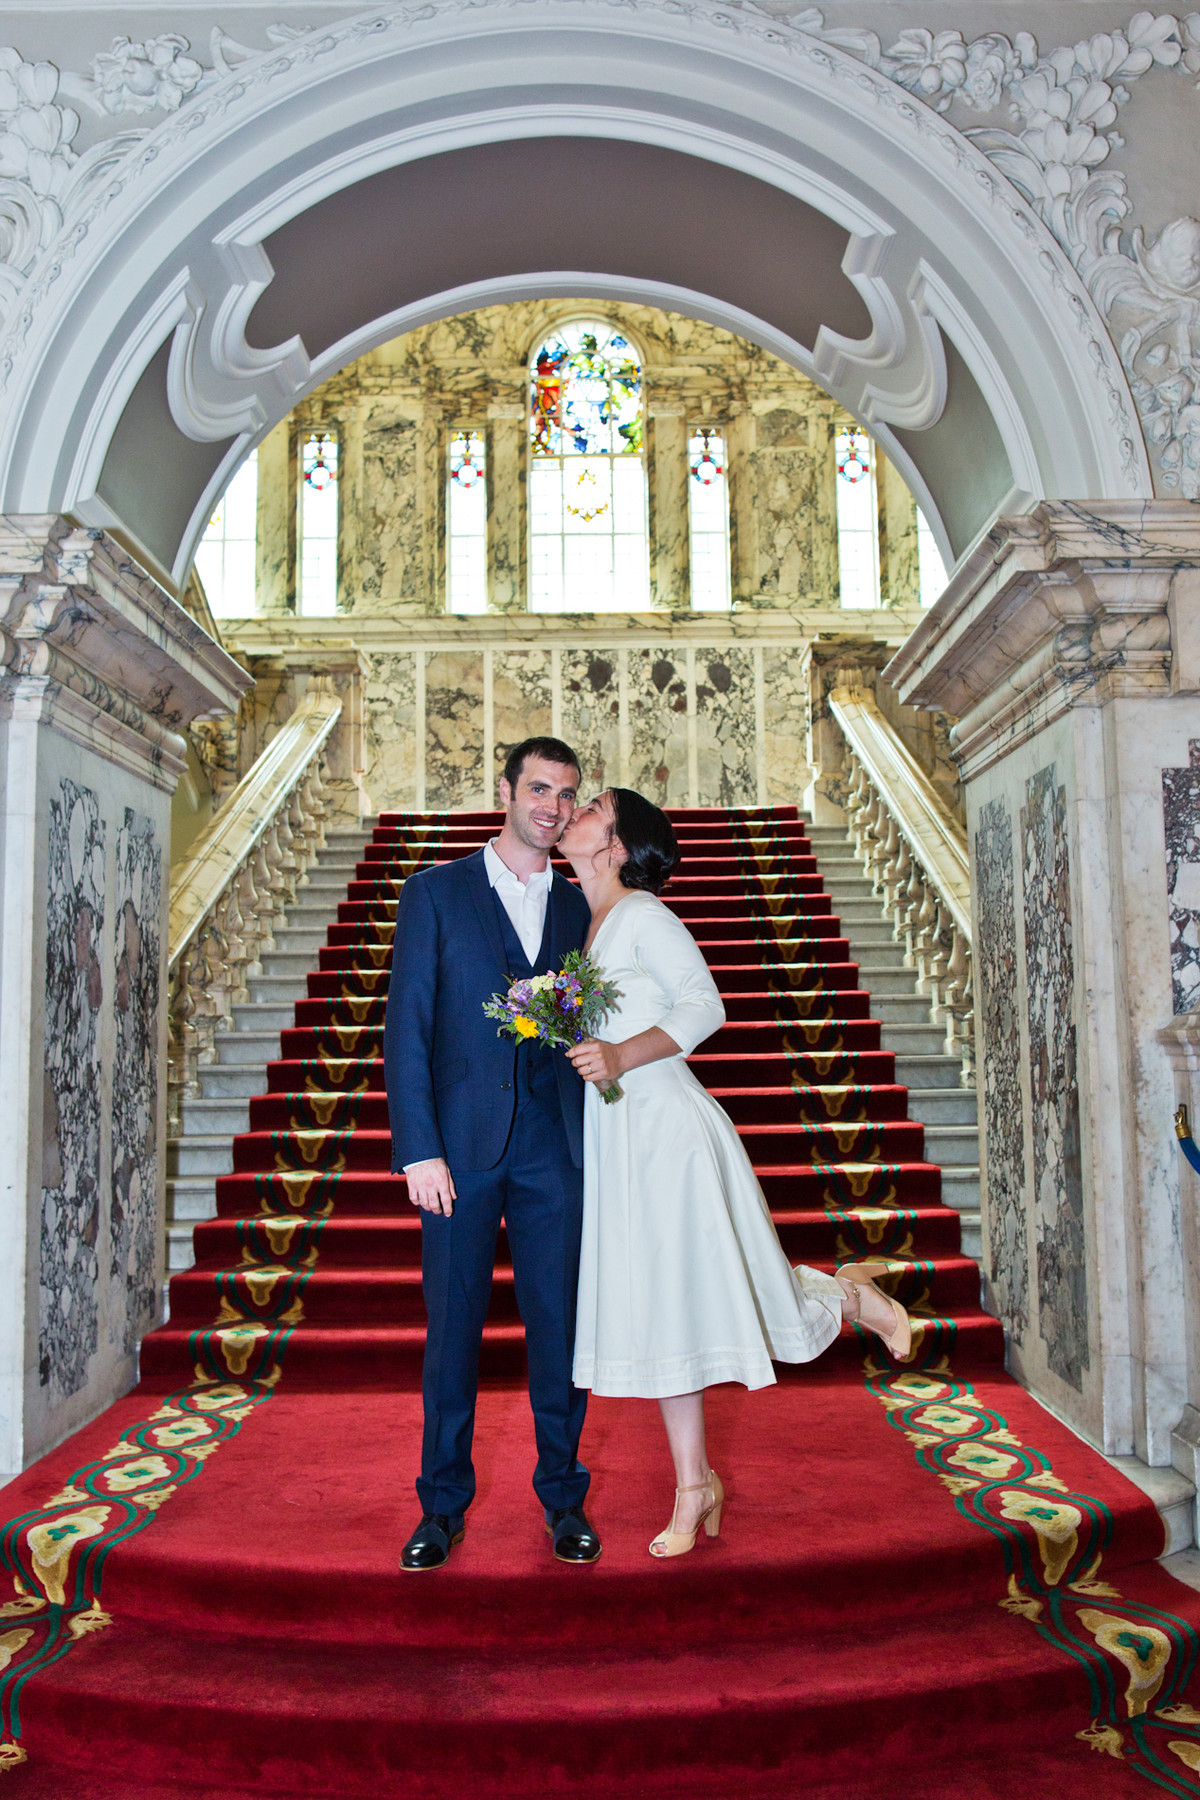 Belfast City Hall wedding photographer snappitt photography portrait bride and groom